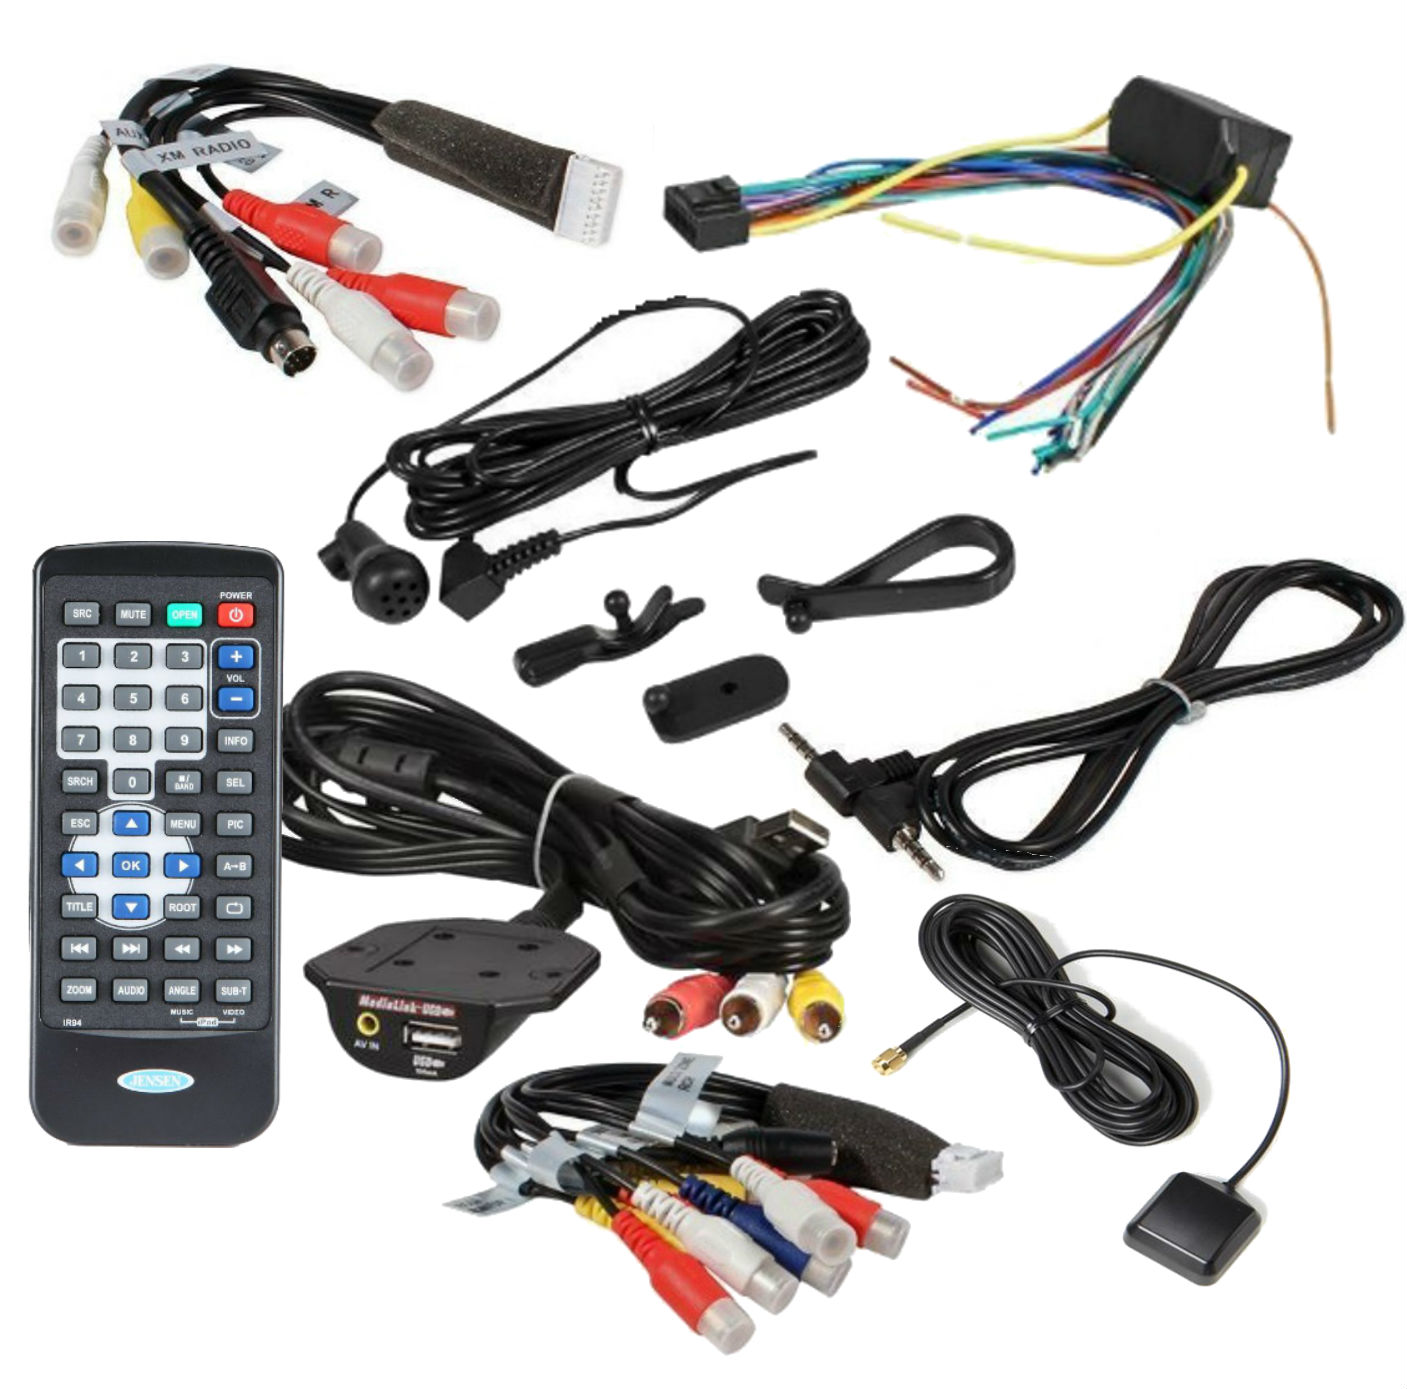 Jensen 334813110 Preamp Audio Video Output Harness with all accessories  remote control and gps antenna for VM9424BT